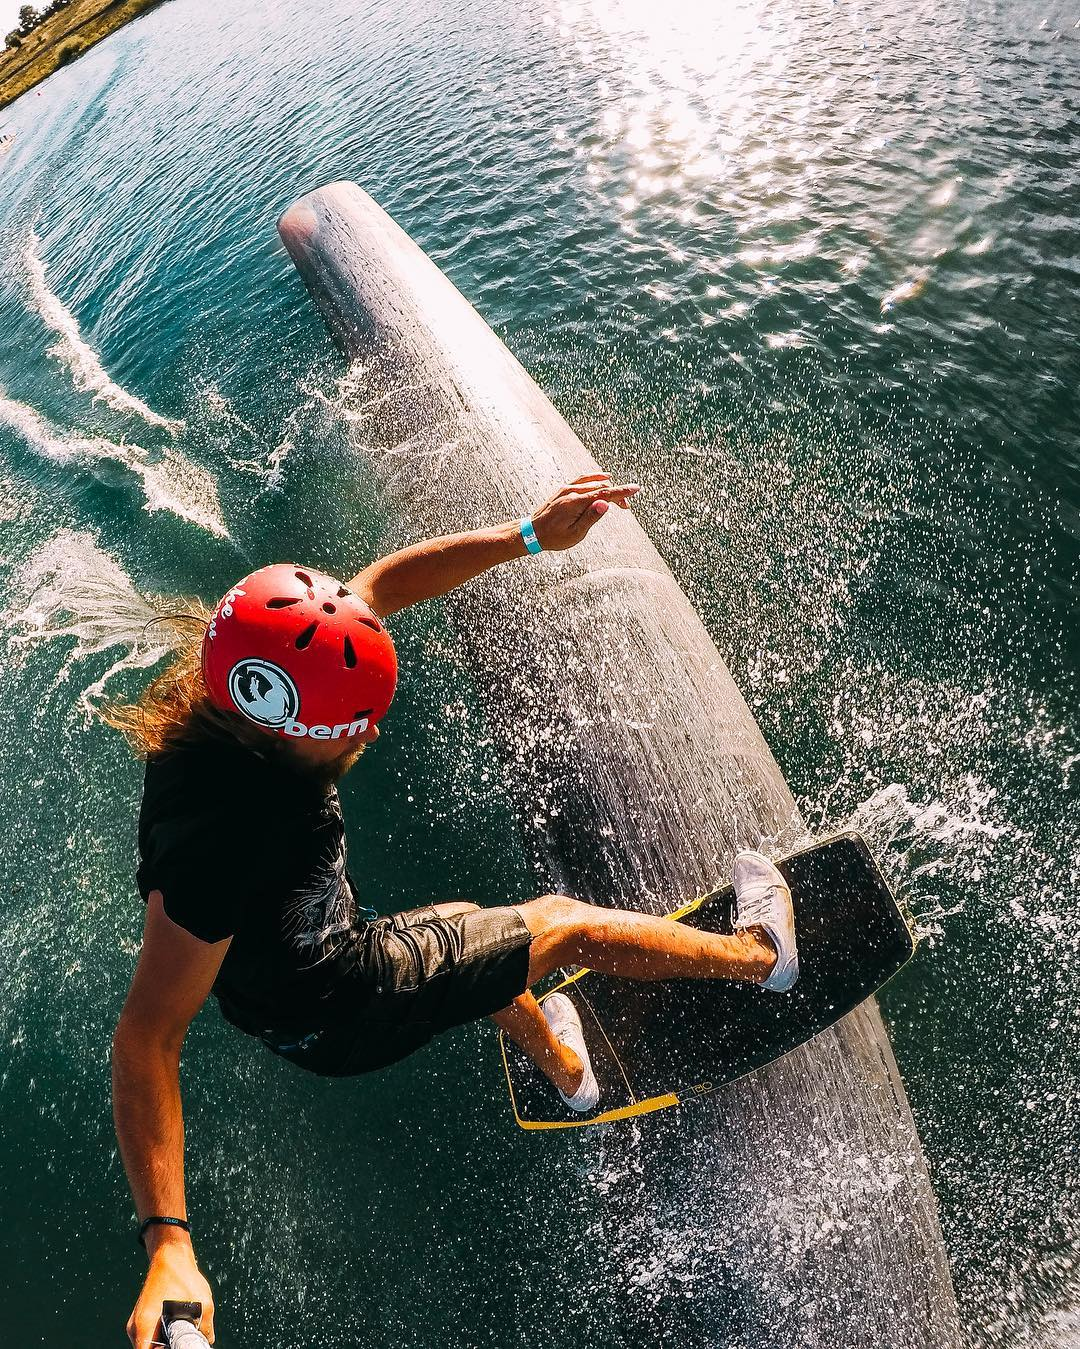 Photo of the Day! #GoProAwards recipient @brymza with a clean pipe slide, scoring $500 on top of mad style points. Yew! #GoPro #Wakeskate